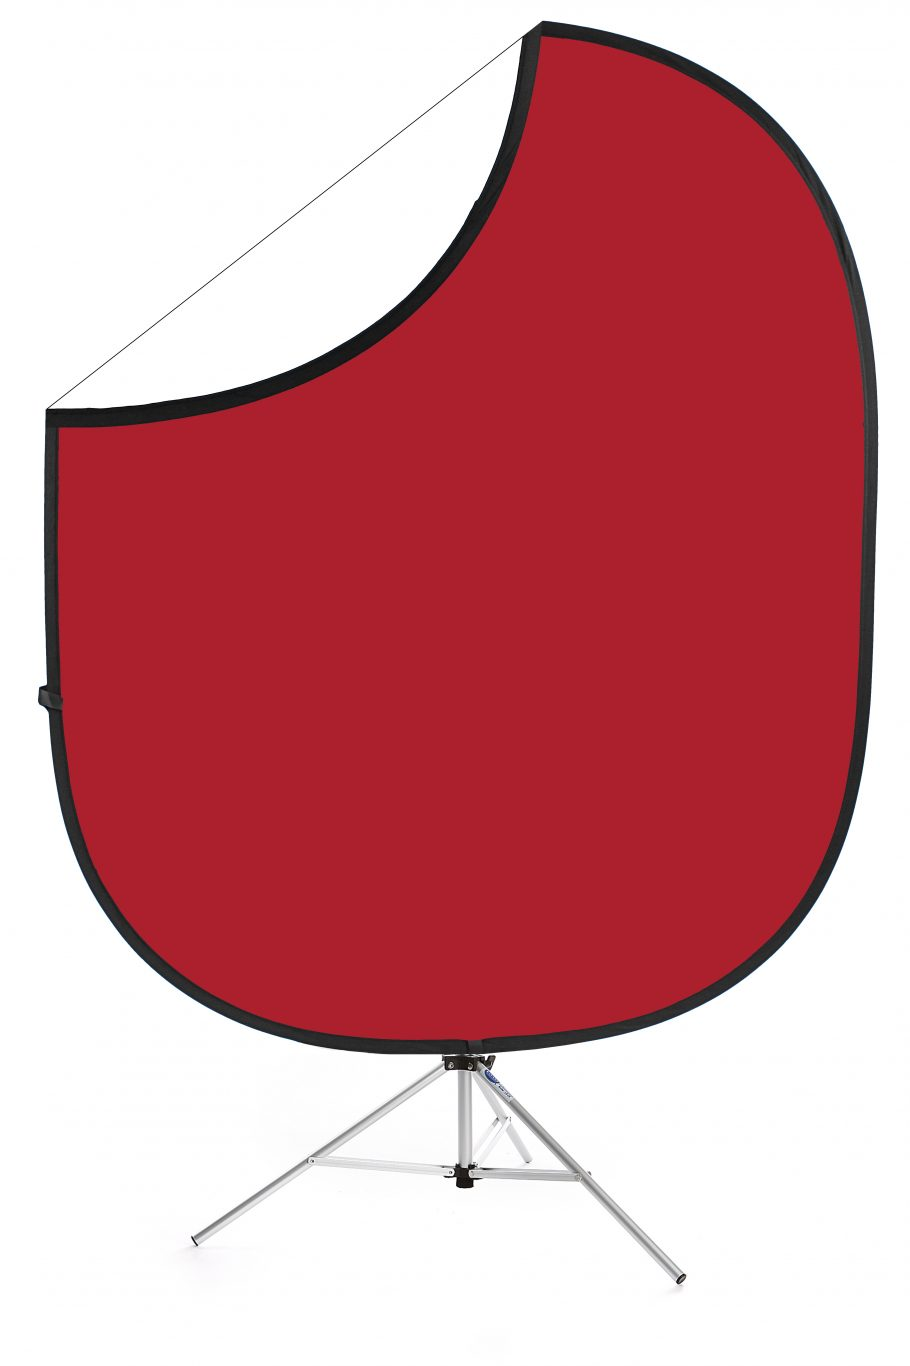 Matador Red/White Collapsible Backdrop Image 1